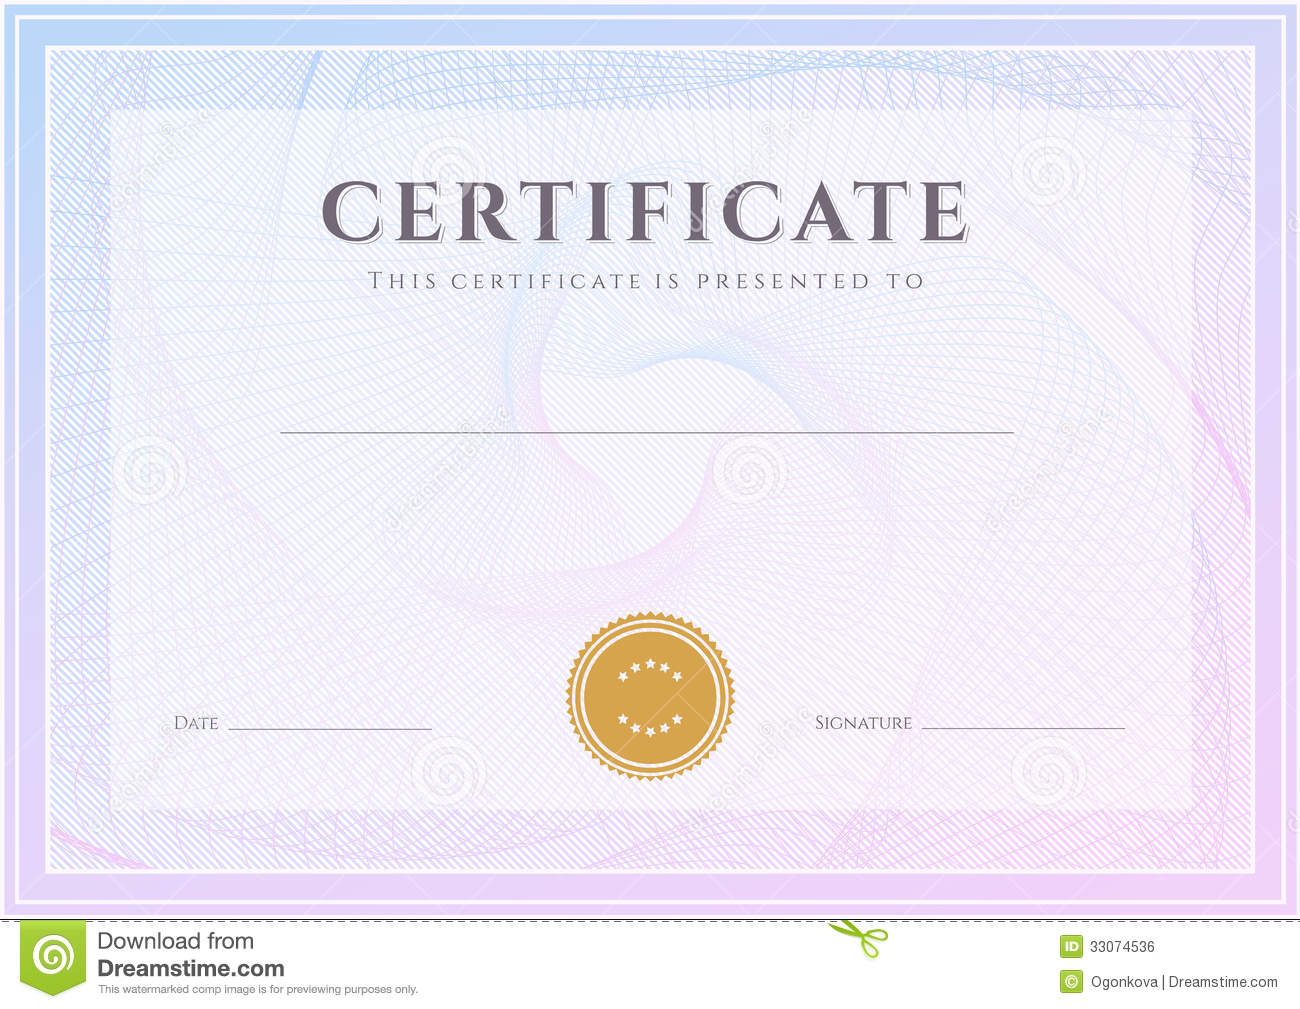 Certificate diploma template award pattern stock vector certificate diploma template award pattern yelopaper Image collections